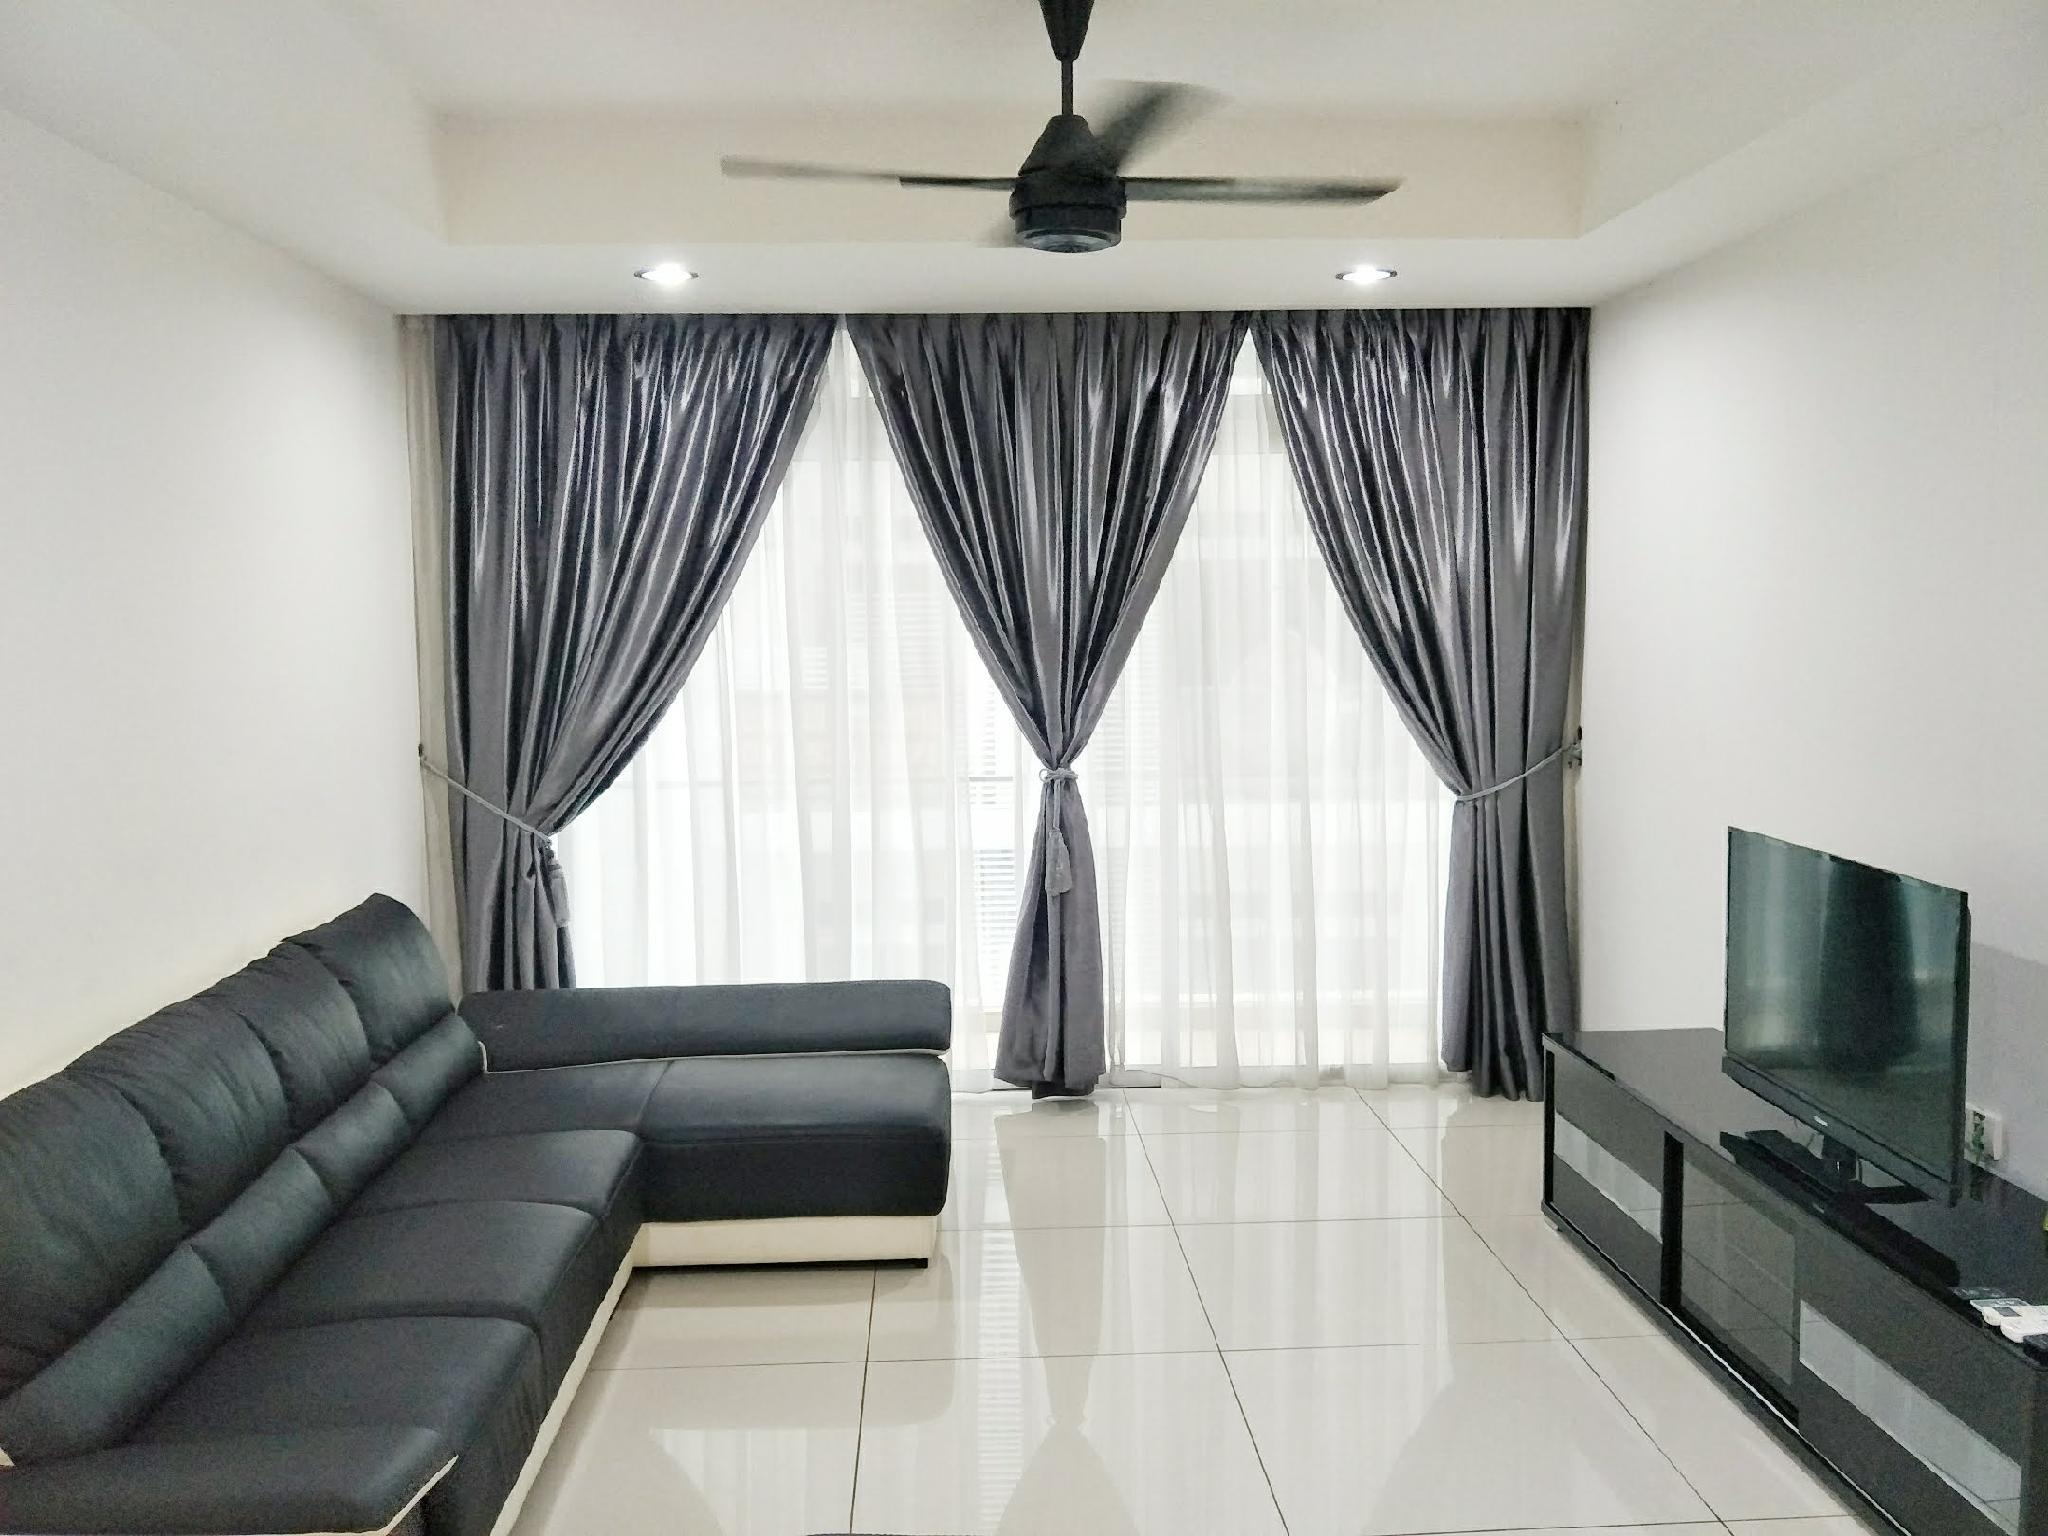 17 KSL City HotelStyle 3Bedrooms@5min To S'pore